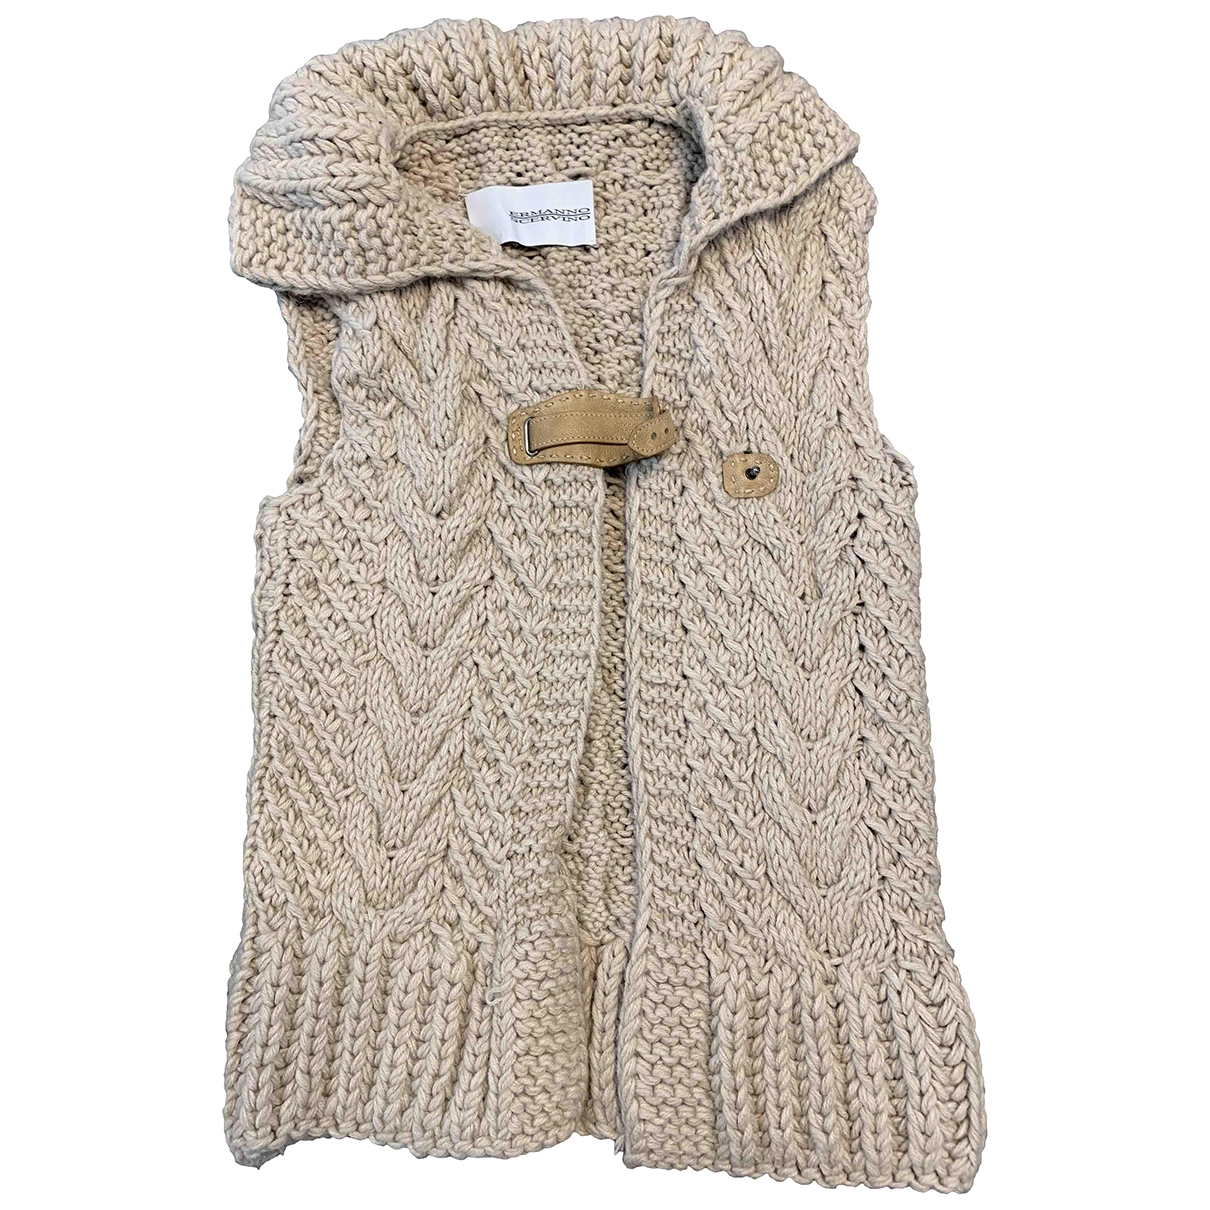 Ermanno Scervino \N Pullover in  Beige Wolle